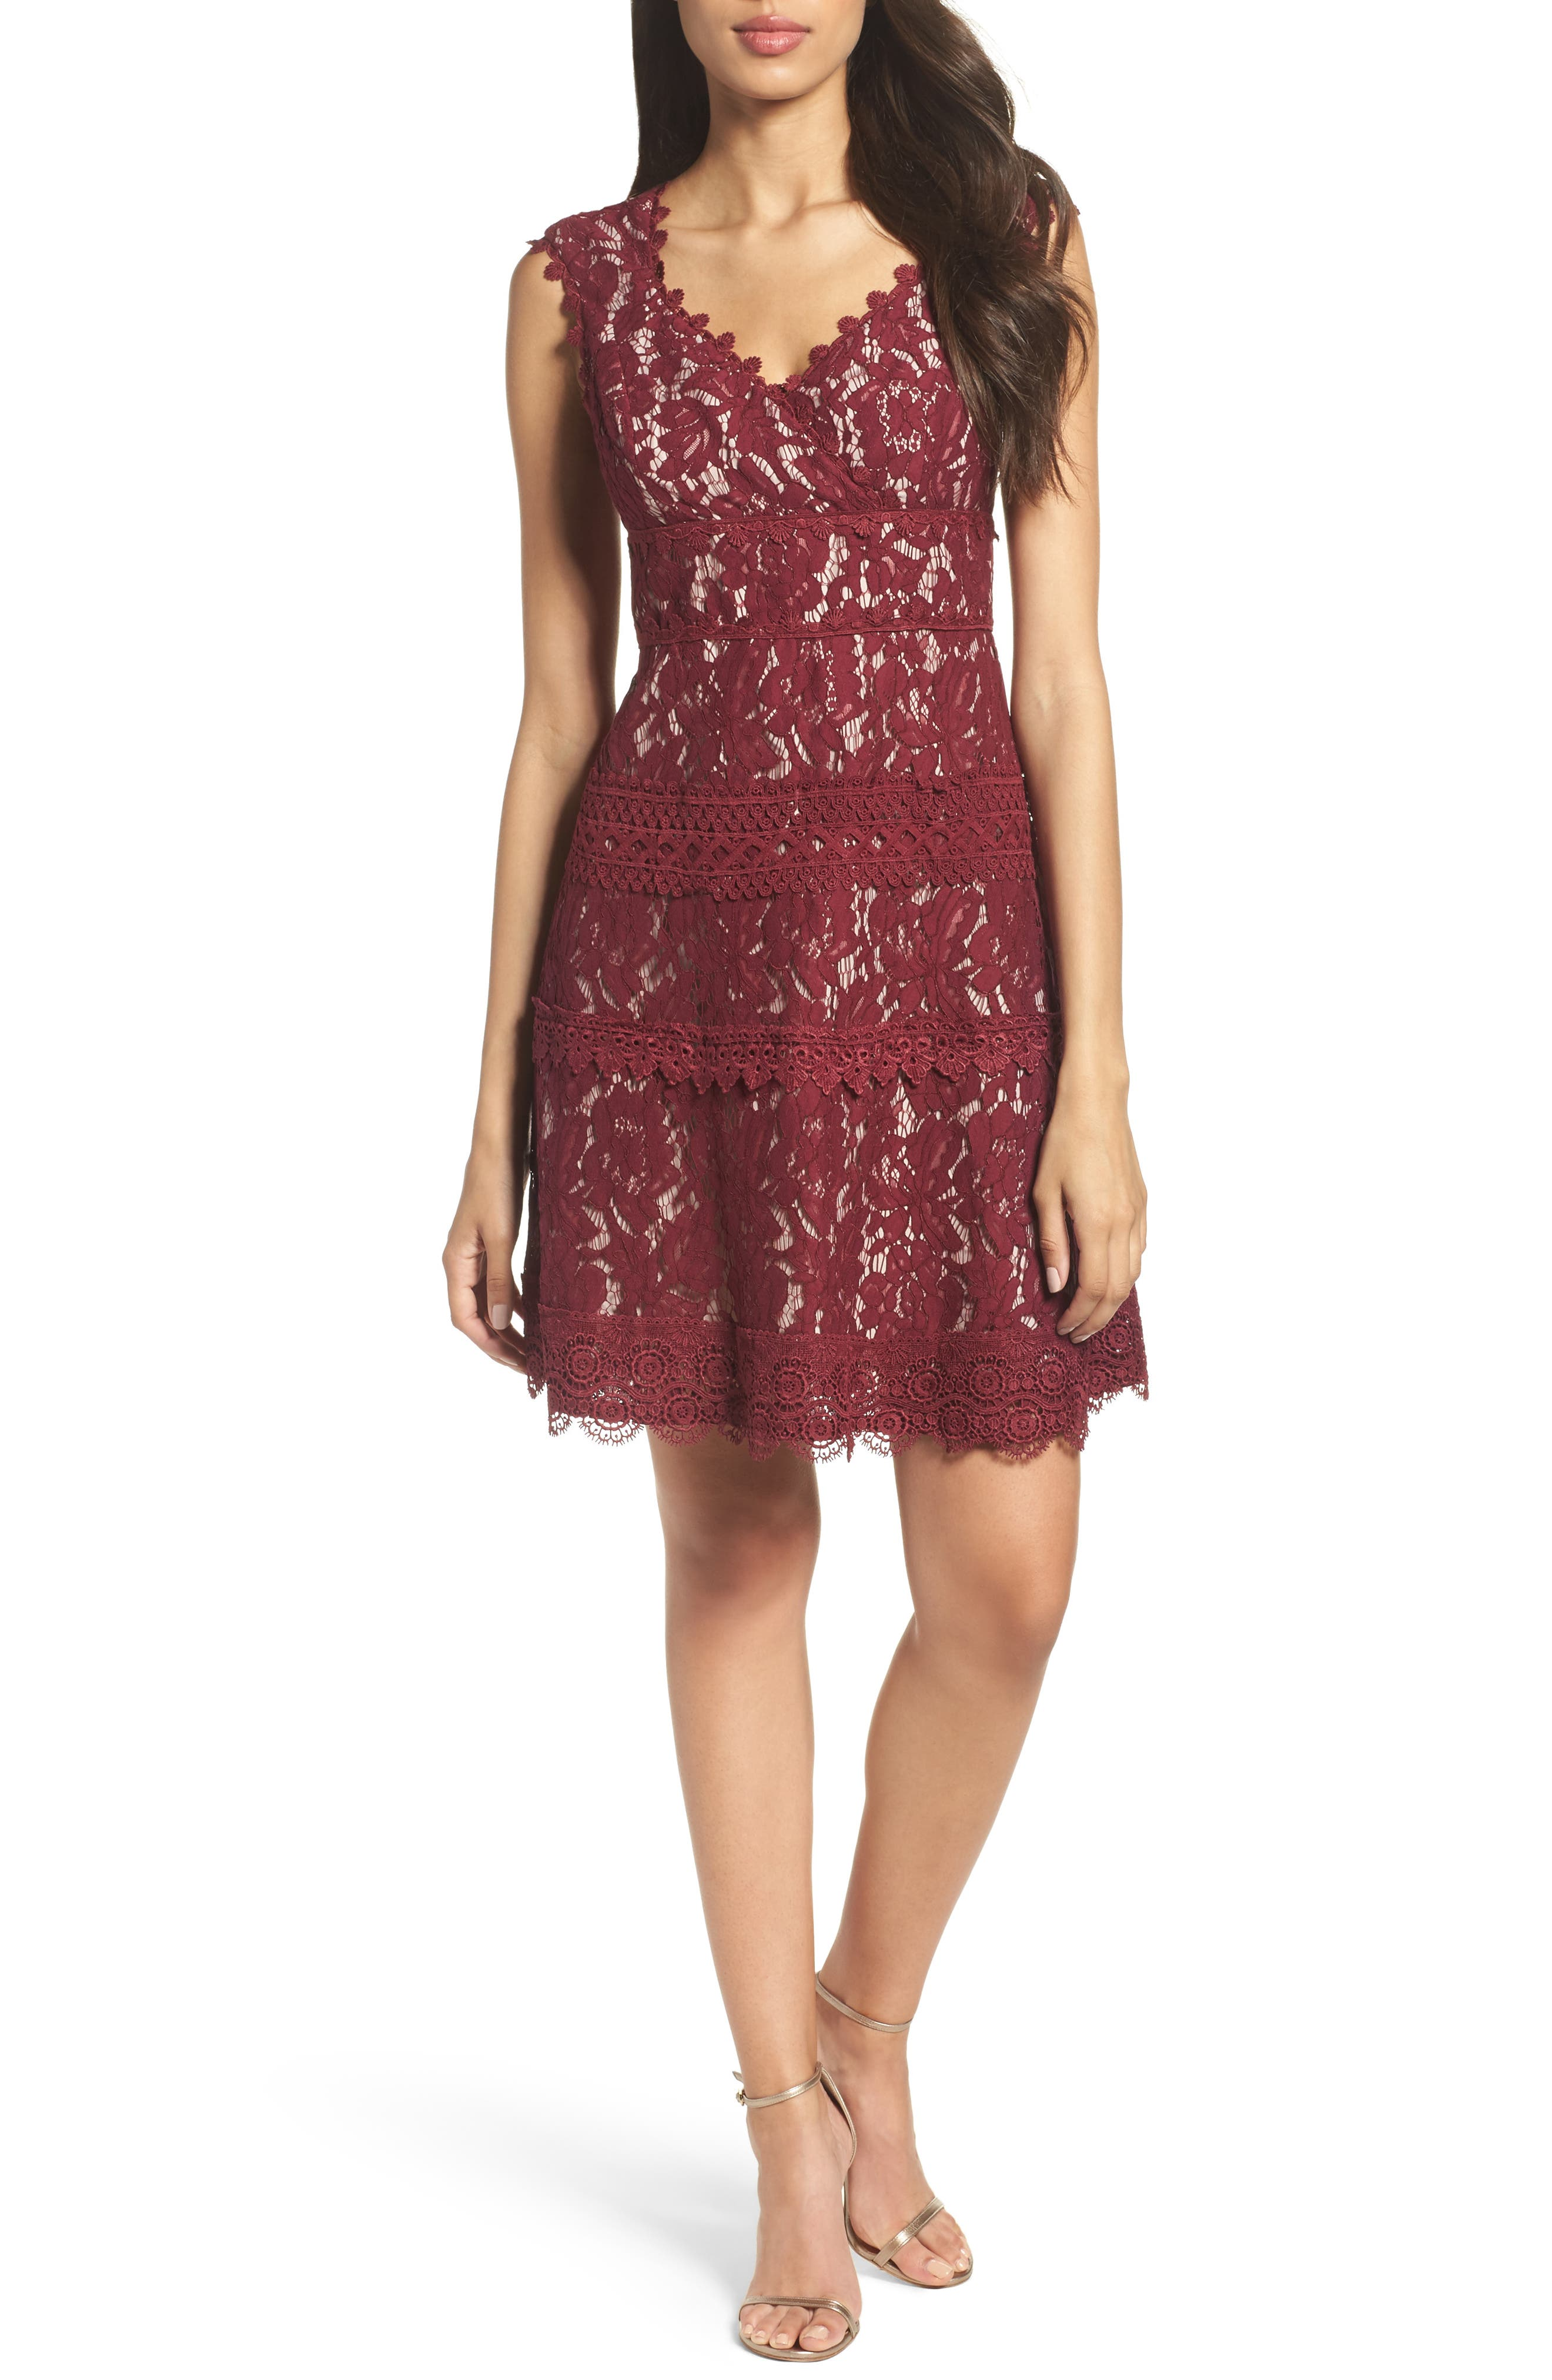 Alternate Image 1 Selected - Adrianna Papell Cynthia Lace Fit & Flare Dress